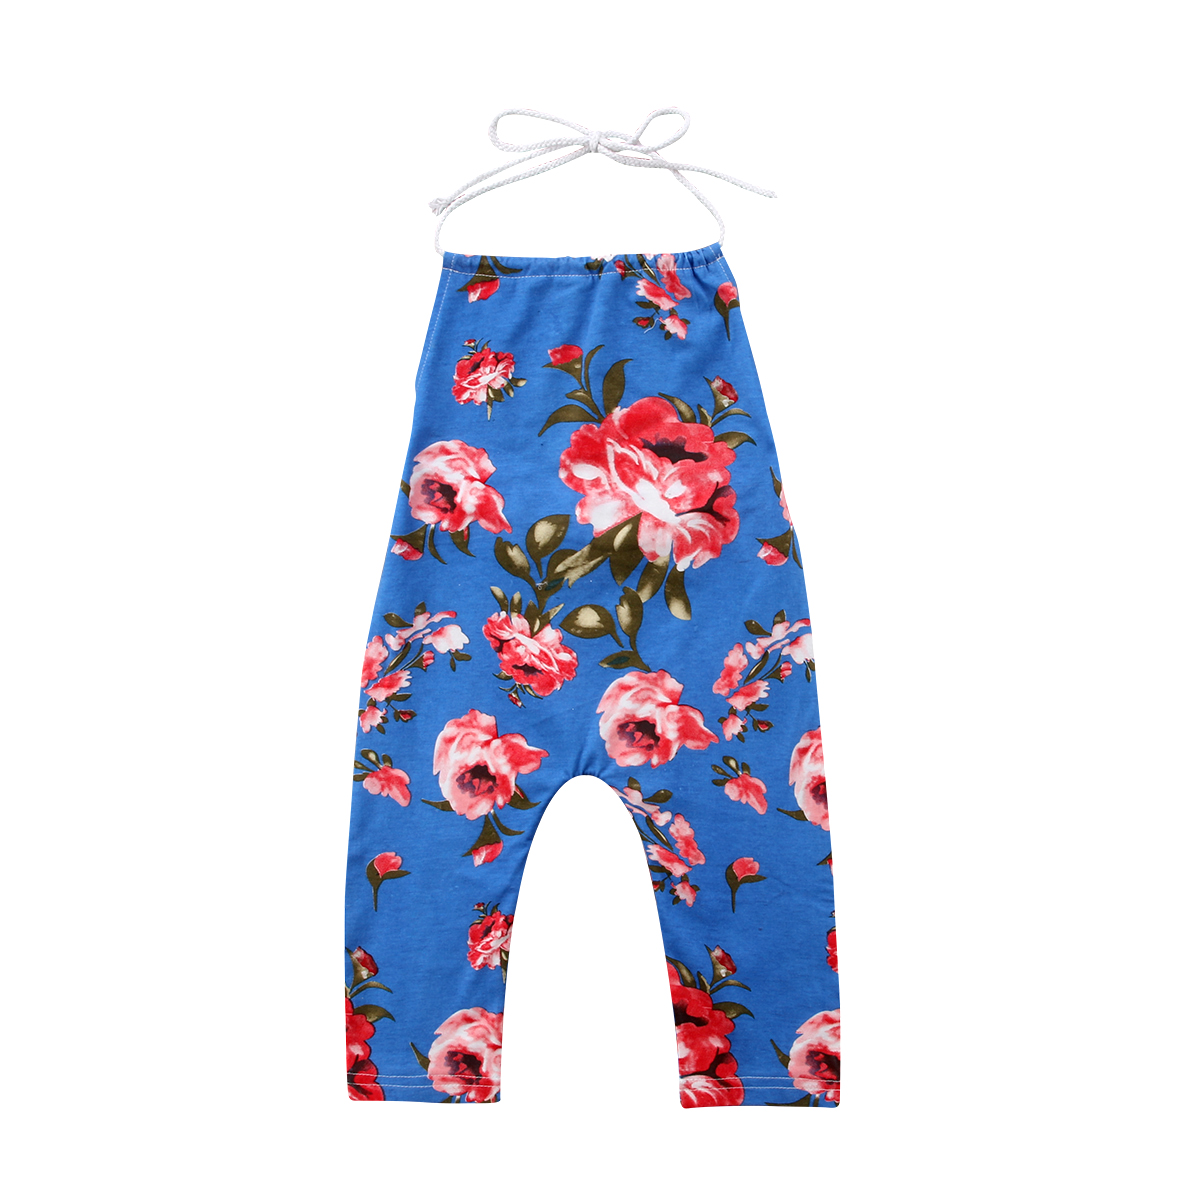 Newborn Infant Baby Girls Summer Blue Floral Sleeveless Strap Romper Jumpsuit Cute Casual Outfit